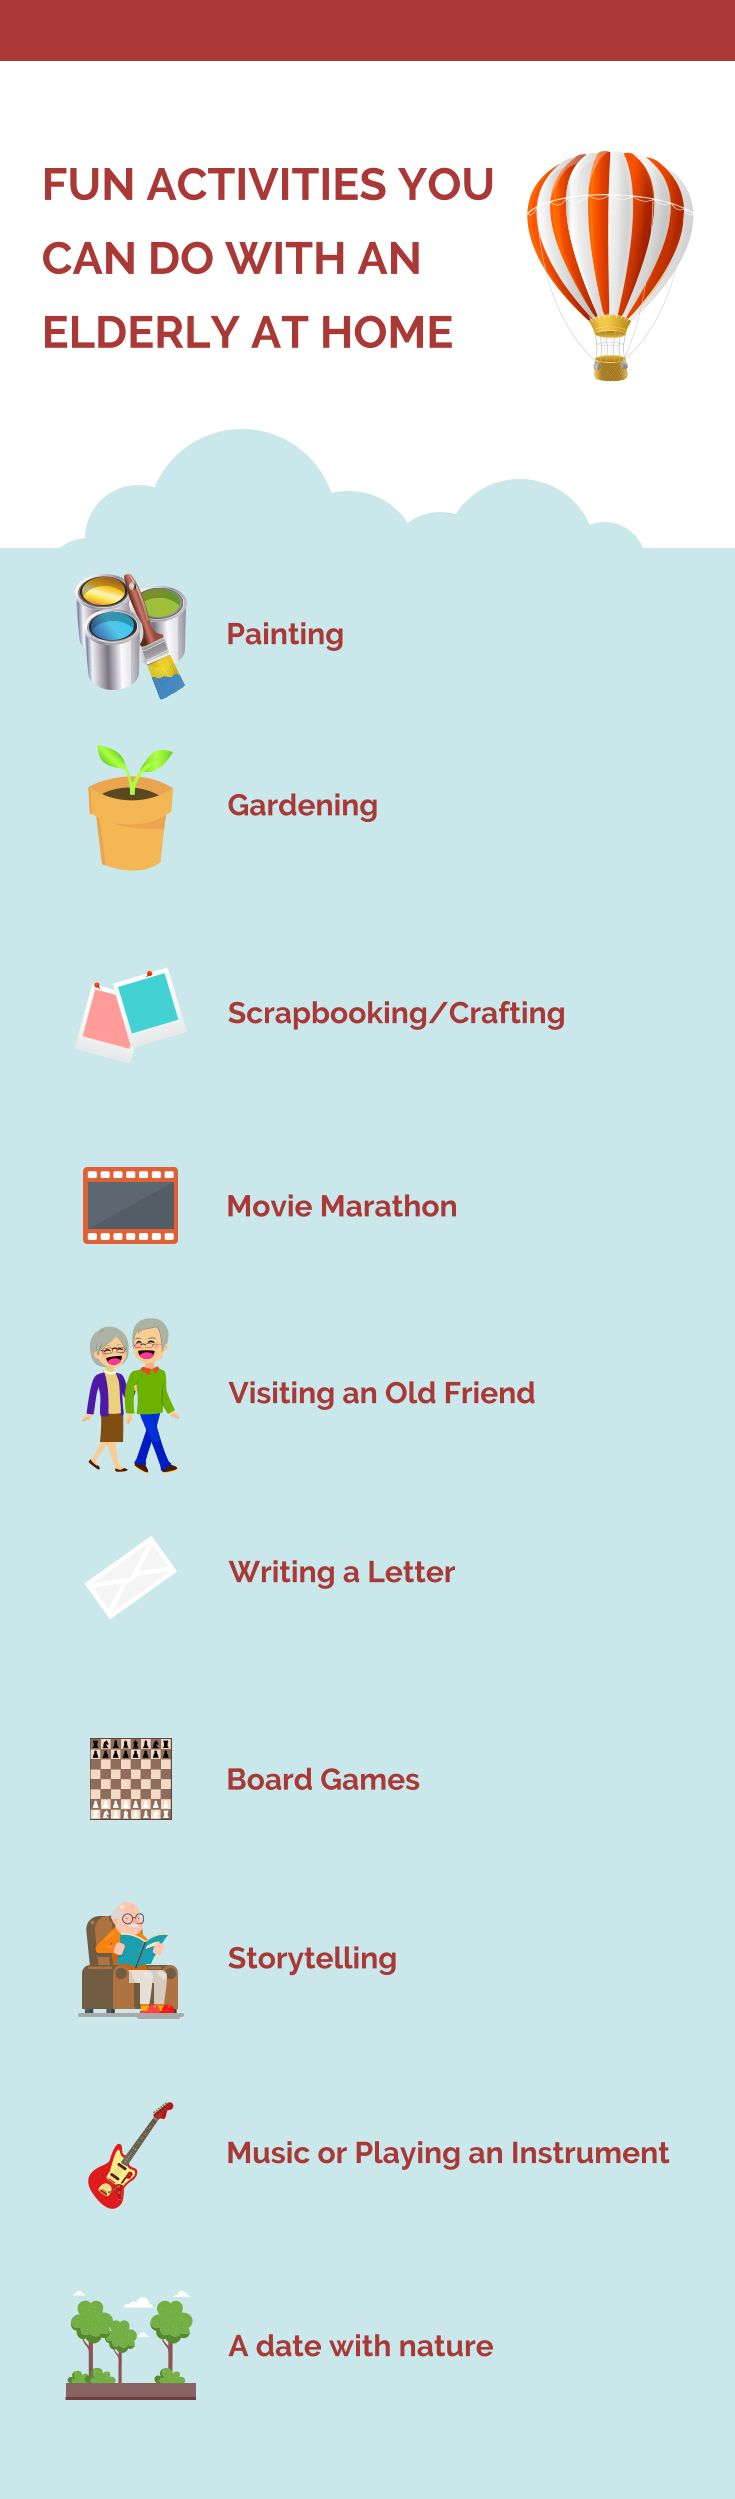 Fun Activities You Can Do with an Elderly at Home #seniorcare